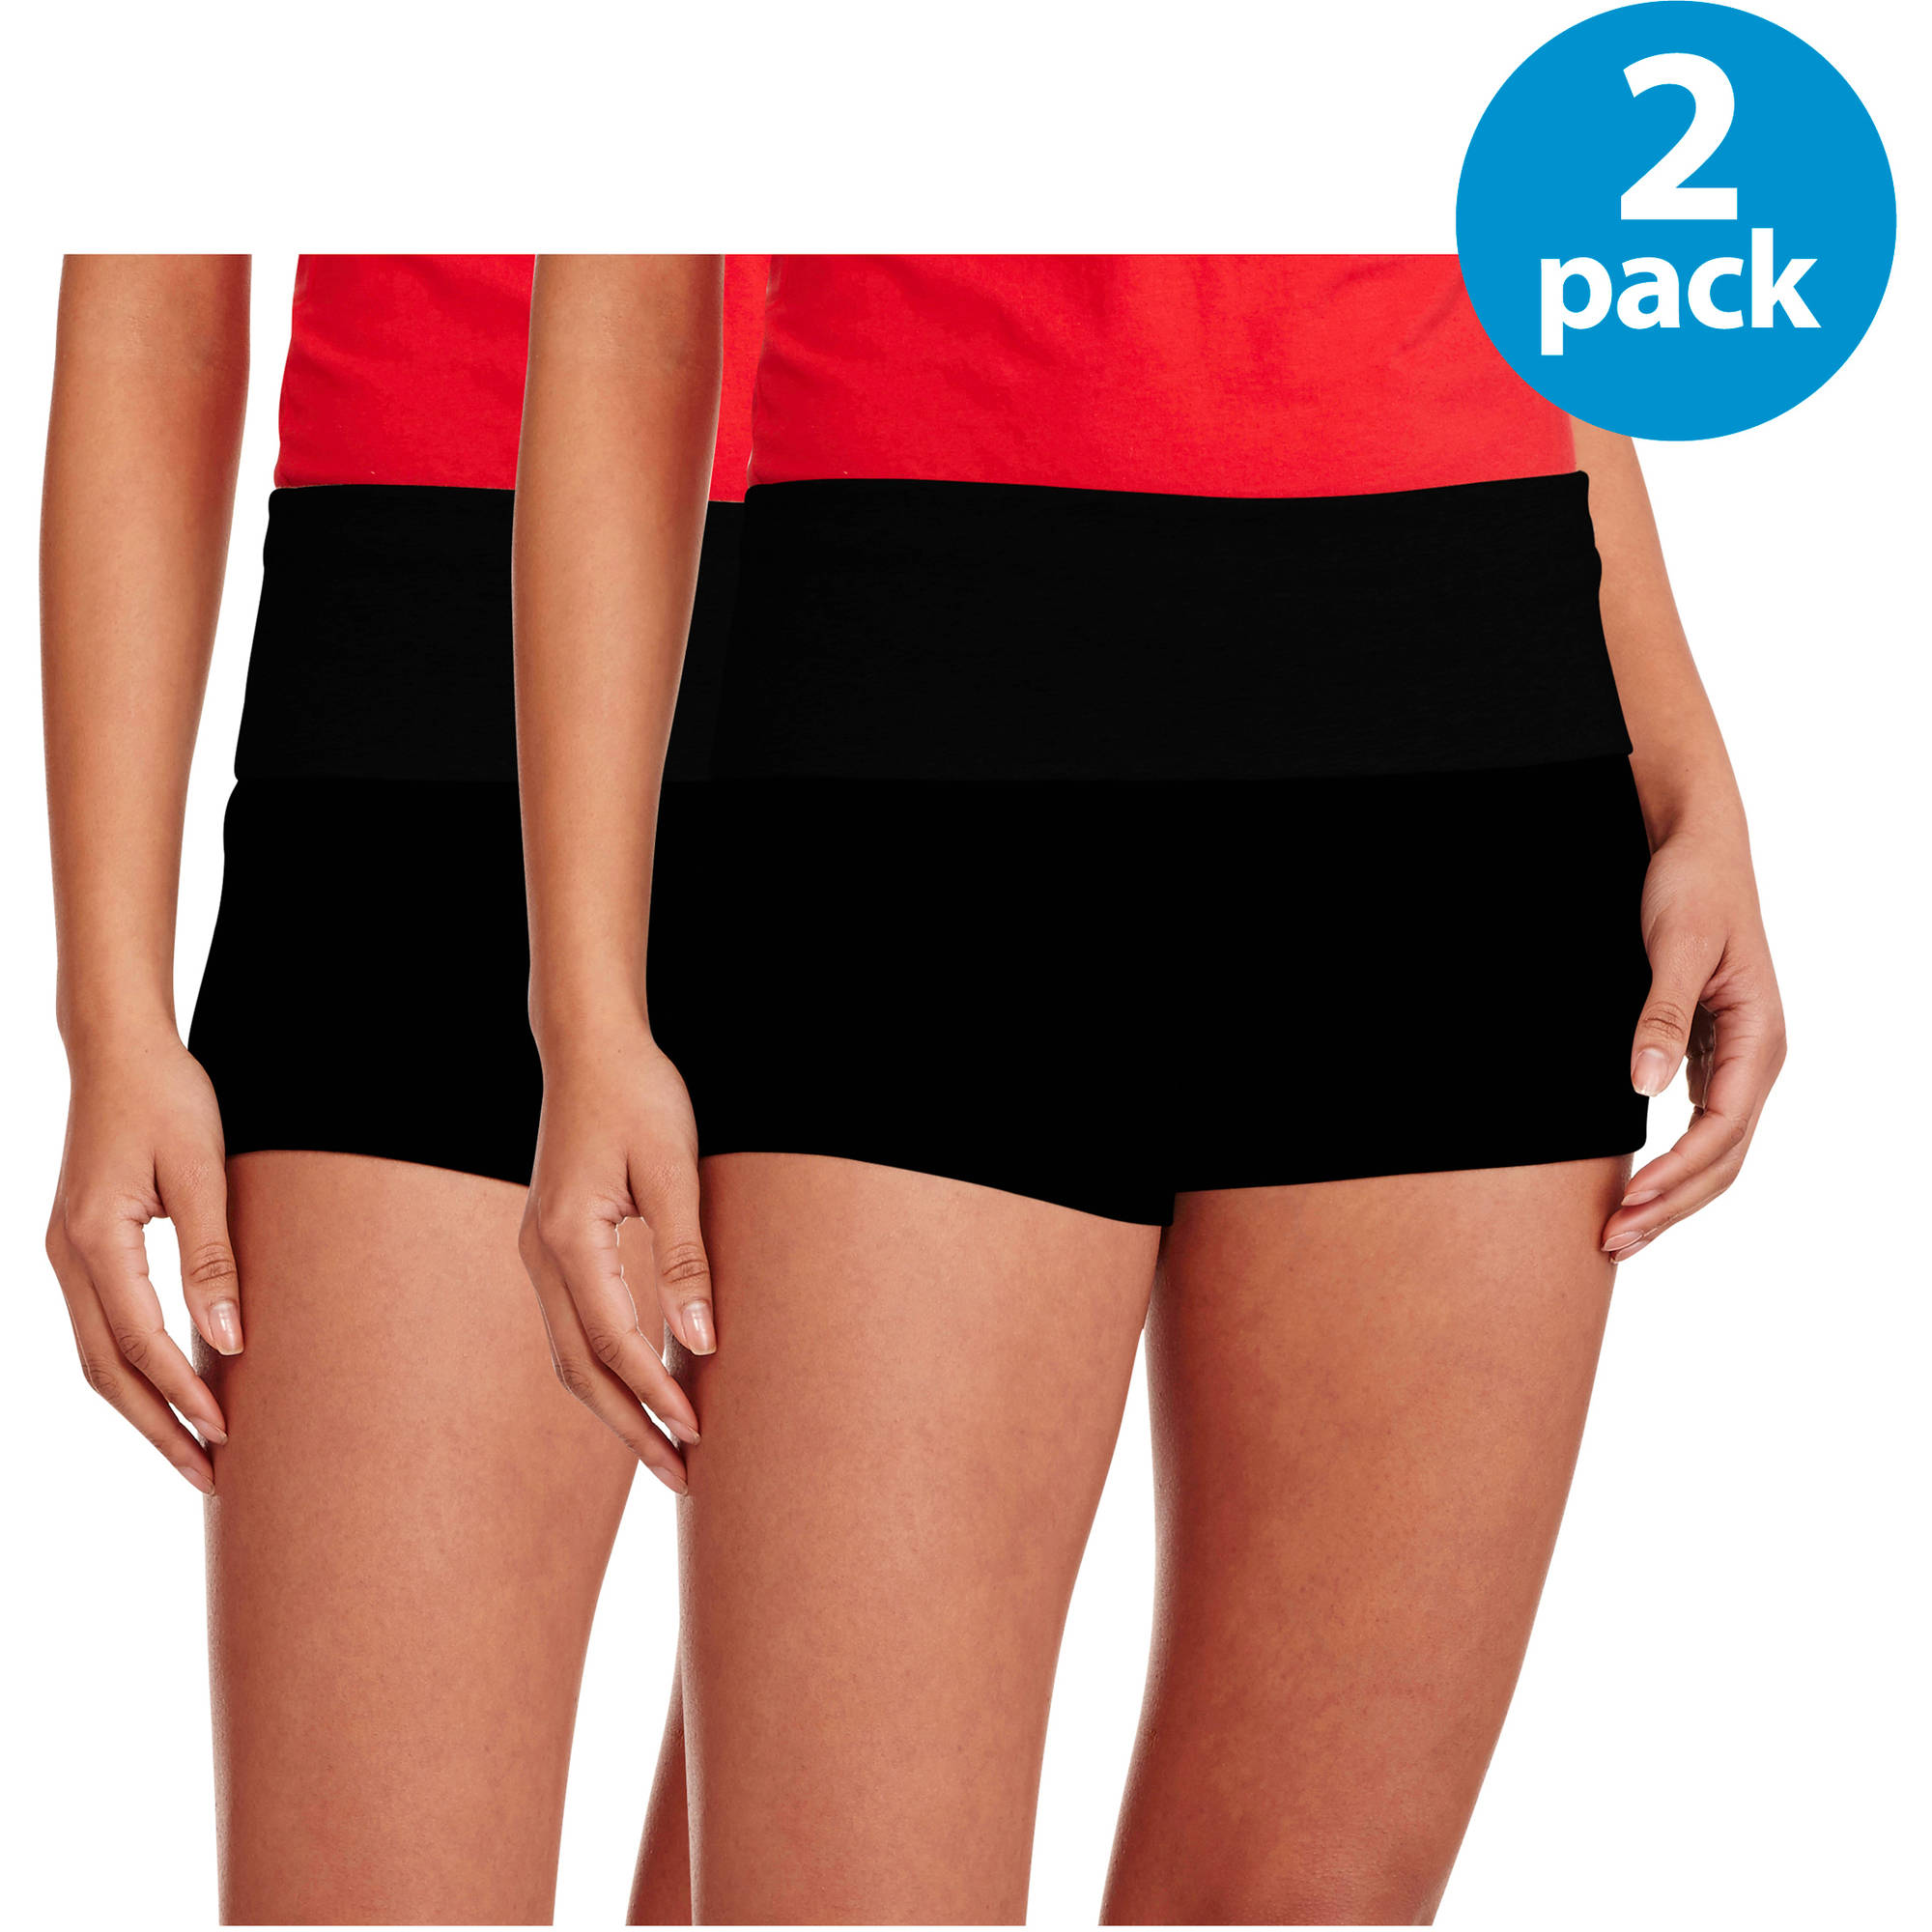 No Boundaries Juniors Yoga Shorts 2 Pack